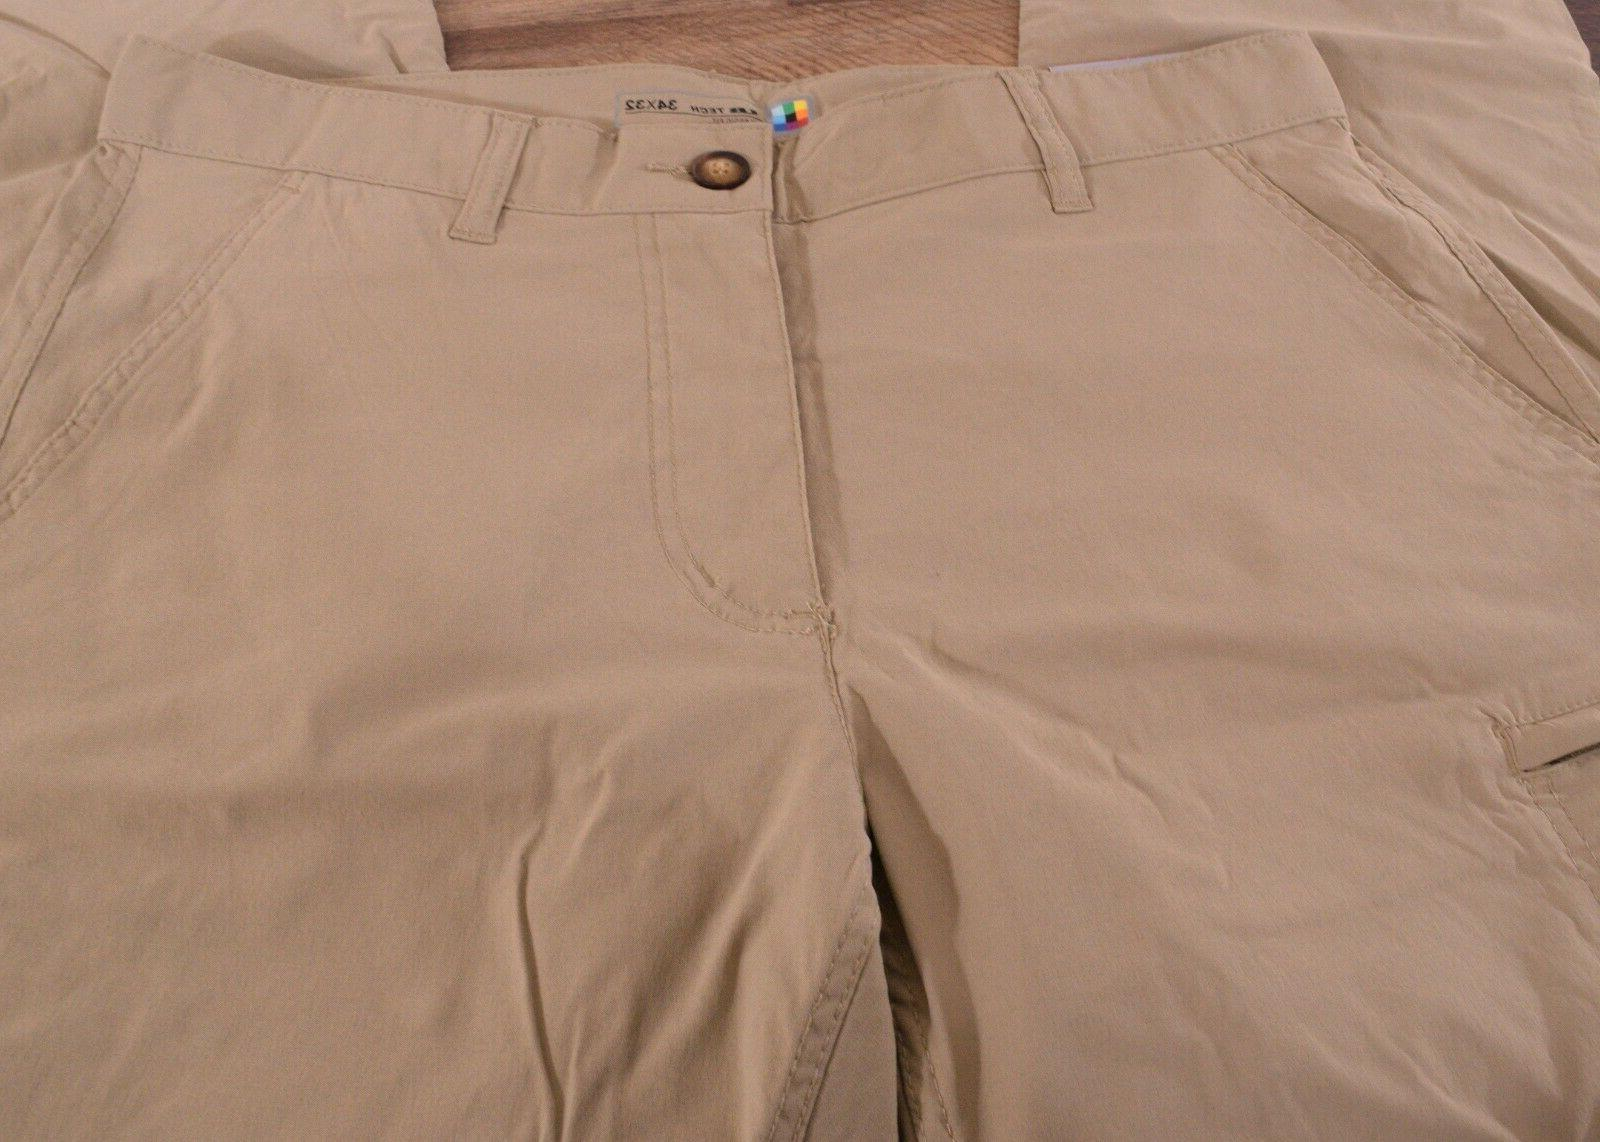 NWT Bay Men's Rainier Comfort Travel Tech Pants